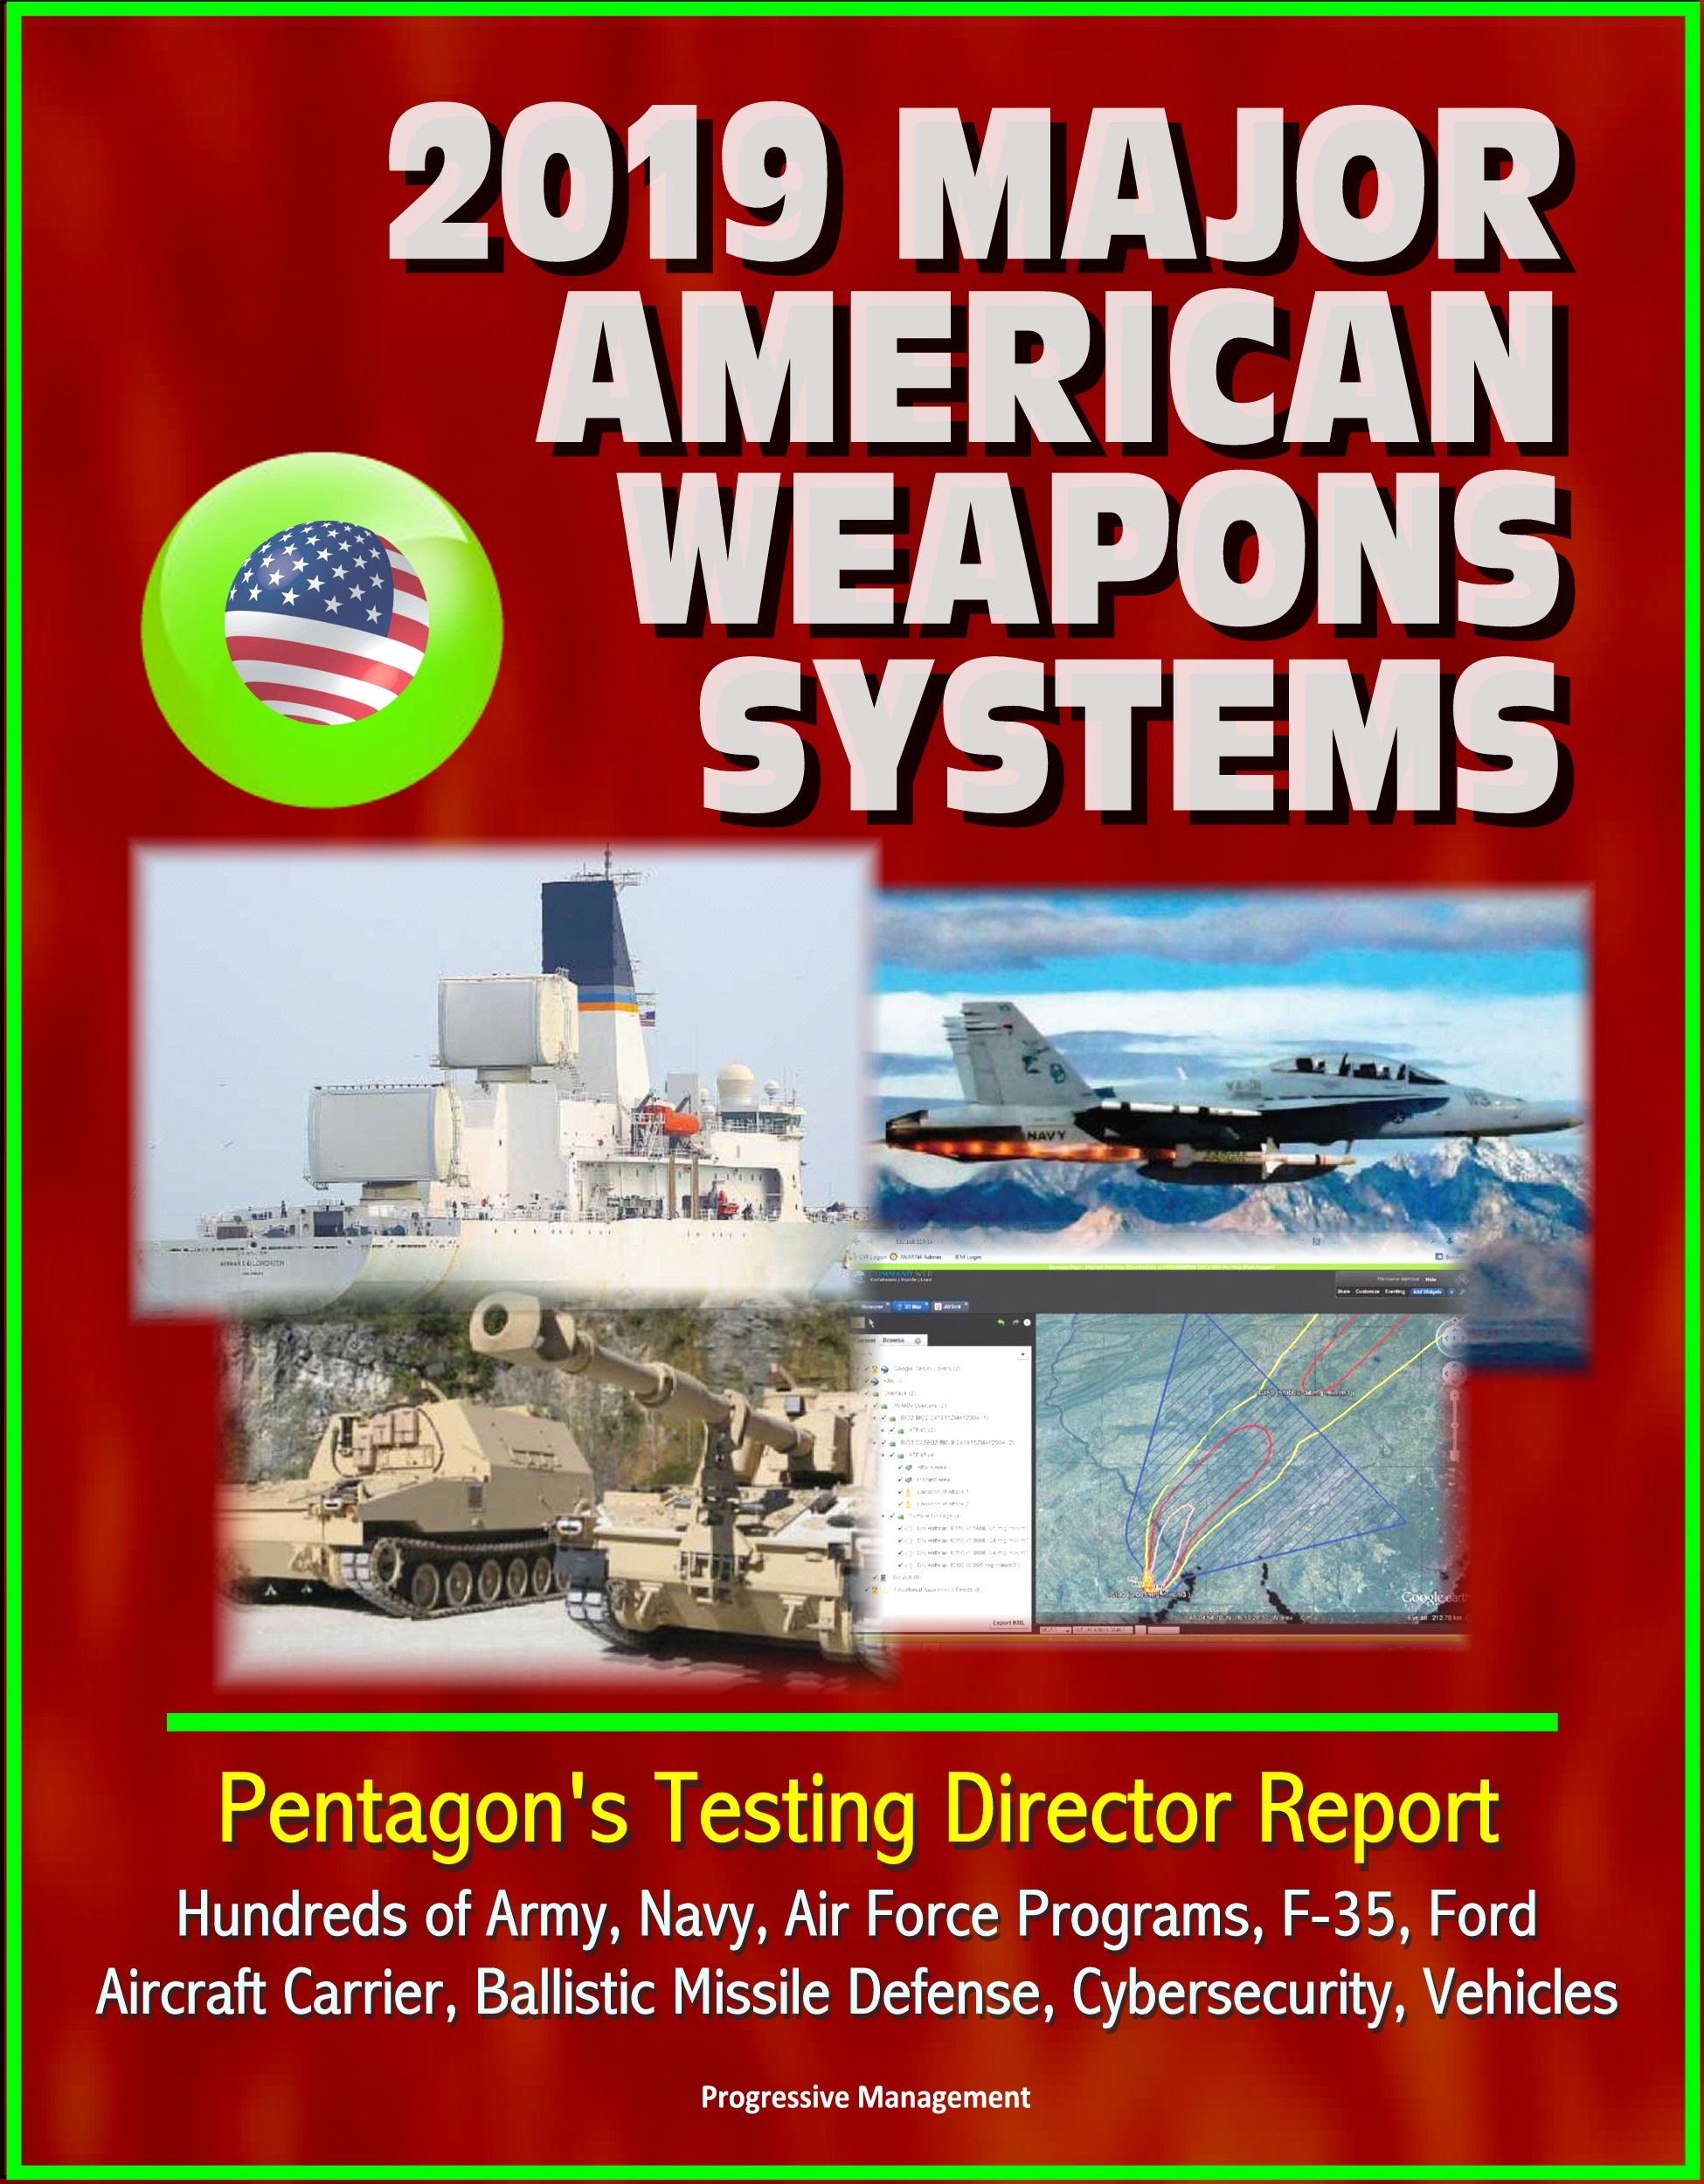 2019 Major American Weapons Systems: Pentagon's Testing Director Report -  Hundreds of Army, Navy, Air Force Programs, F-35, Ford Aircraft Carrier,